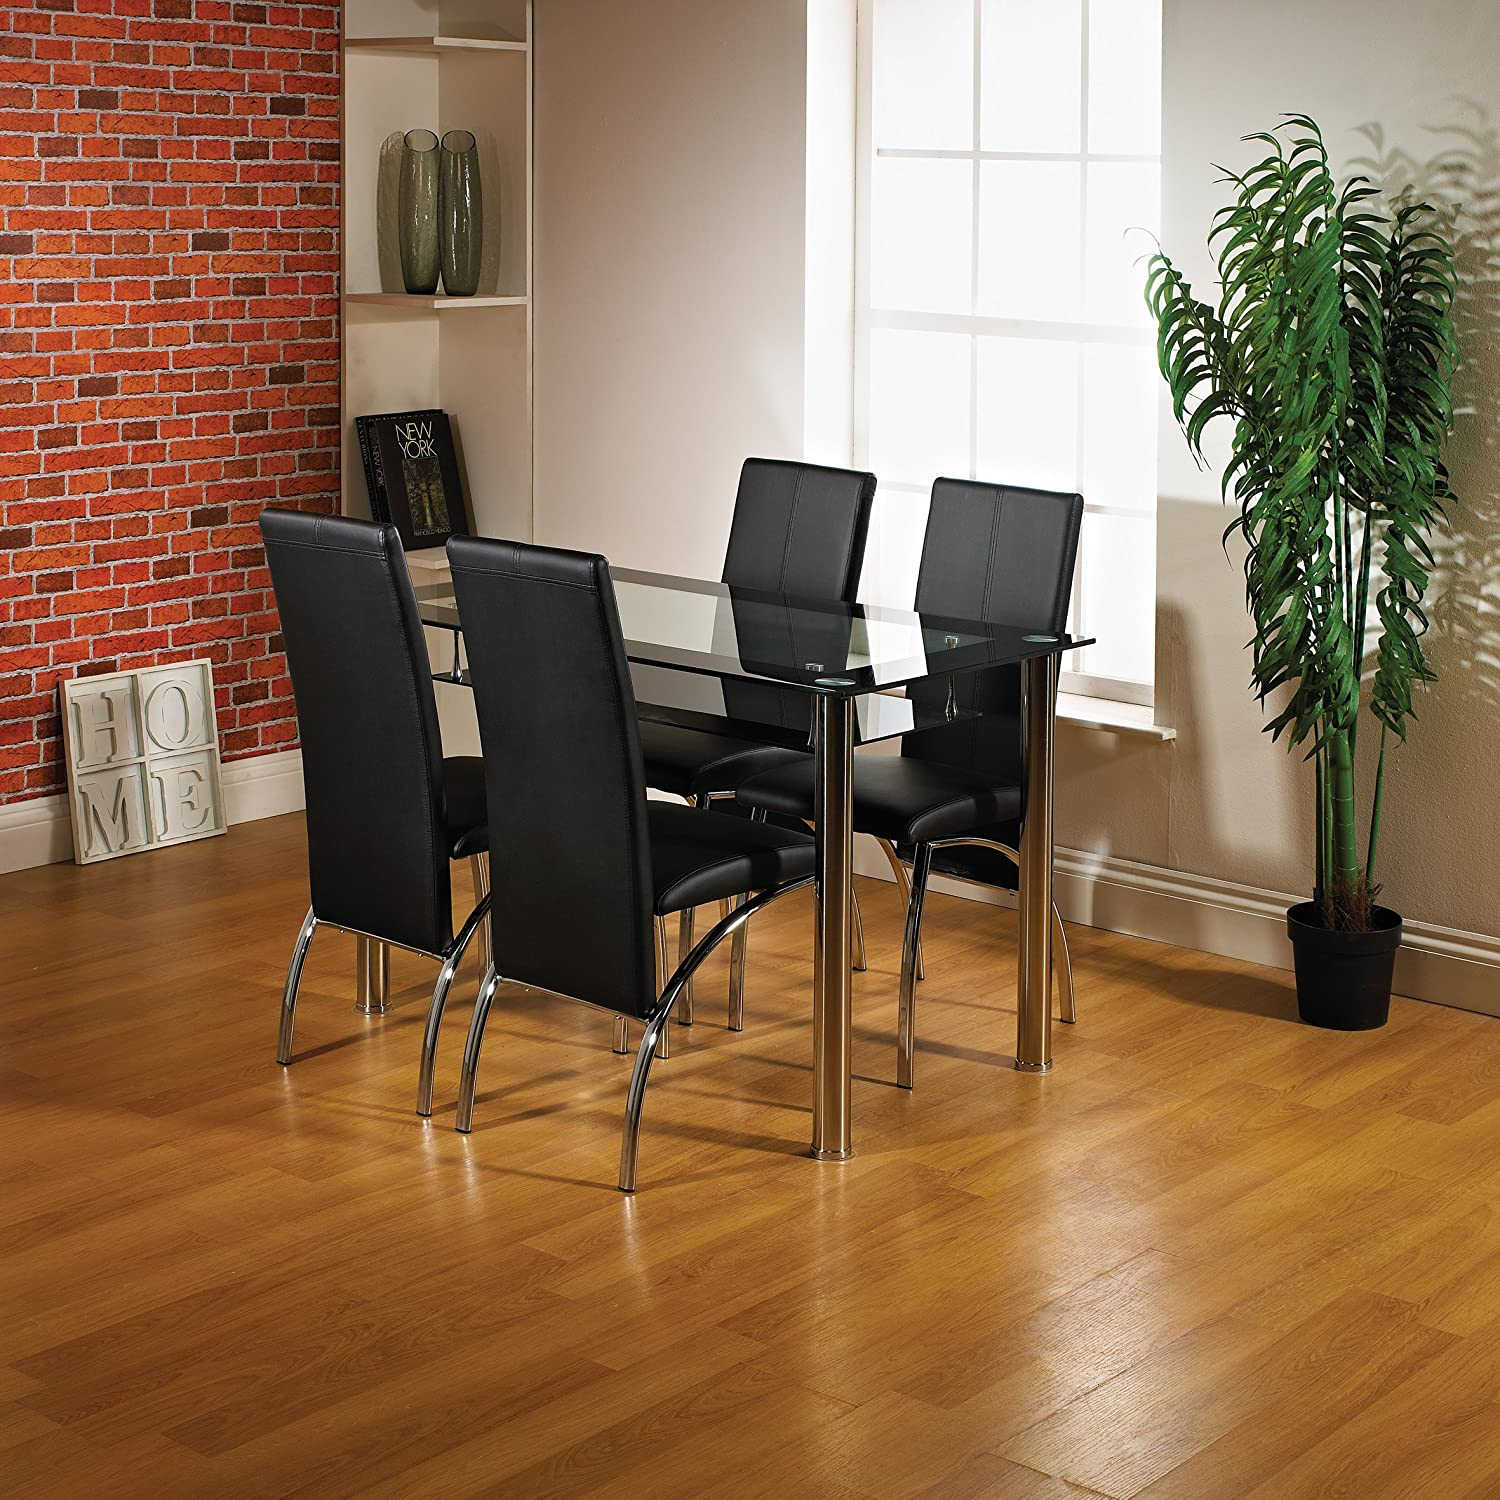 MODERNIQUE Glass Dining Table and 4 Chairs set Table size 120 cm